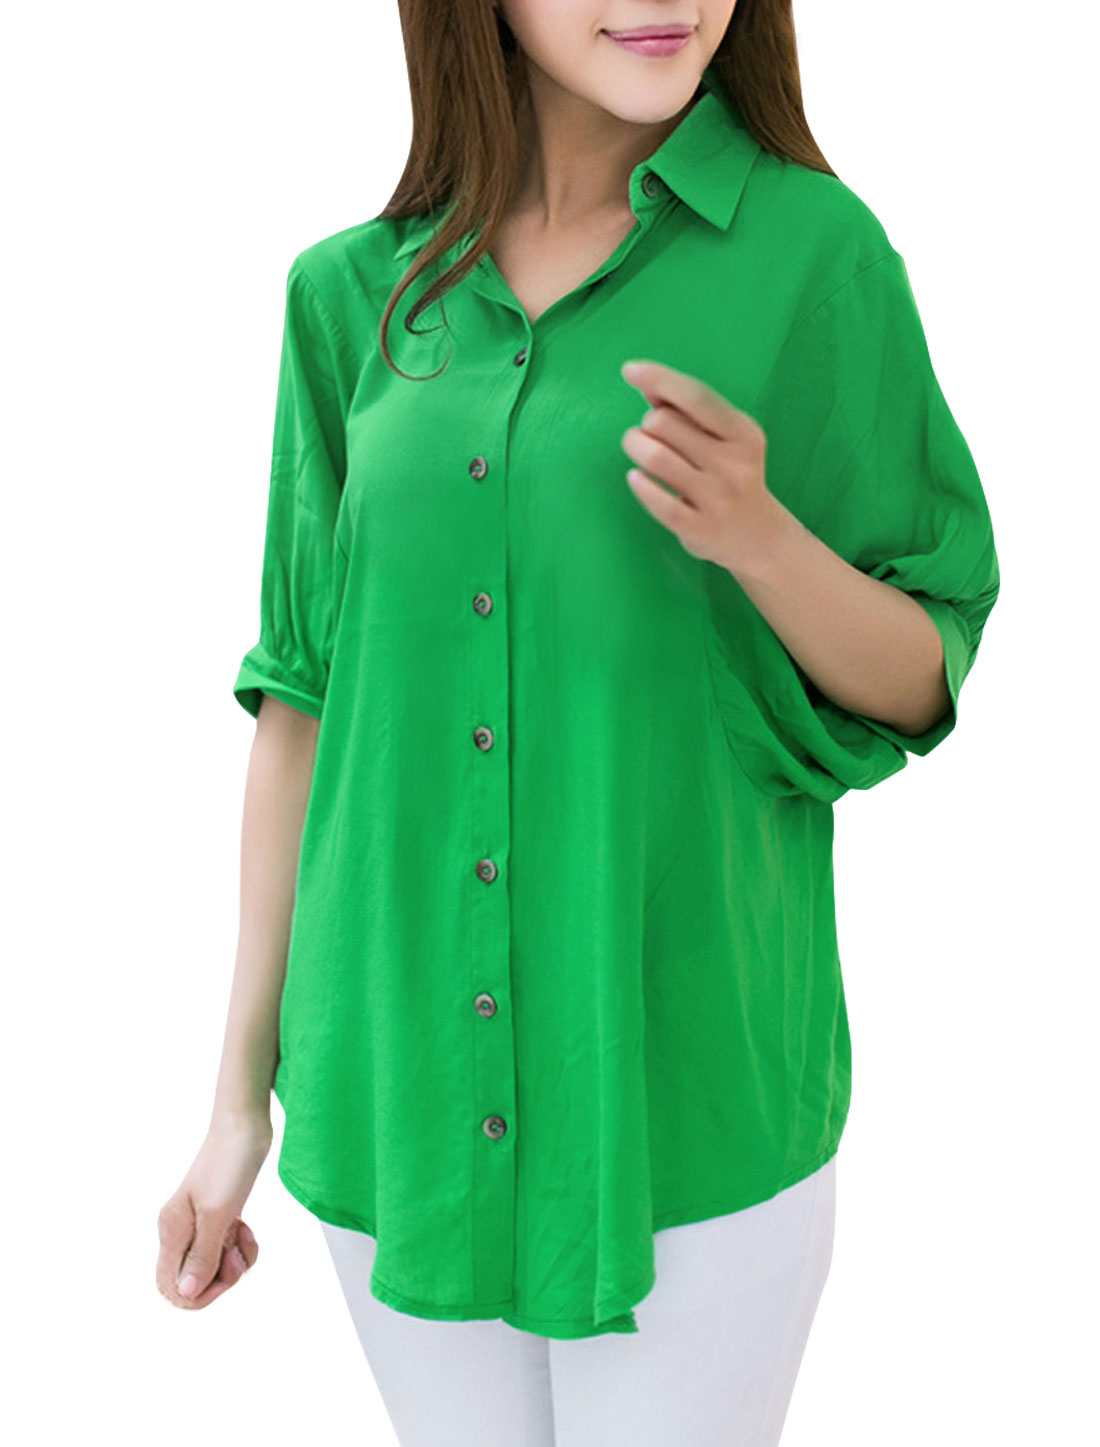 Stylish Women Button Closure Rund Hem Top Shirt Green M